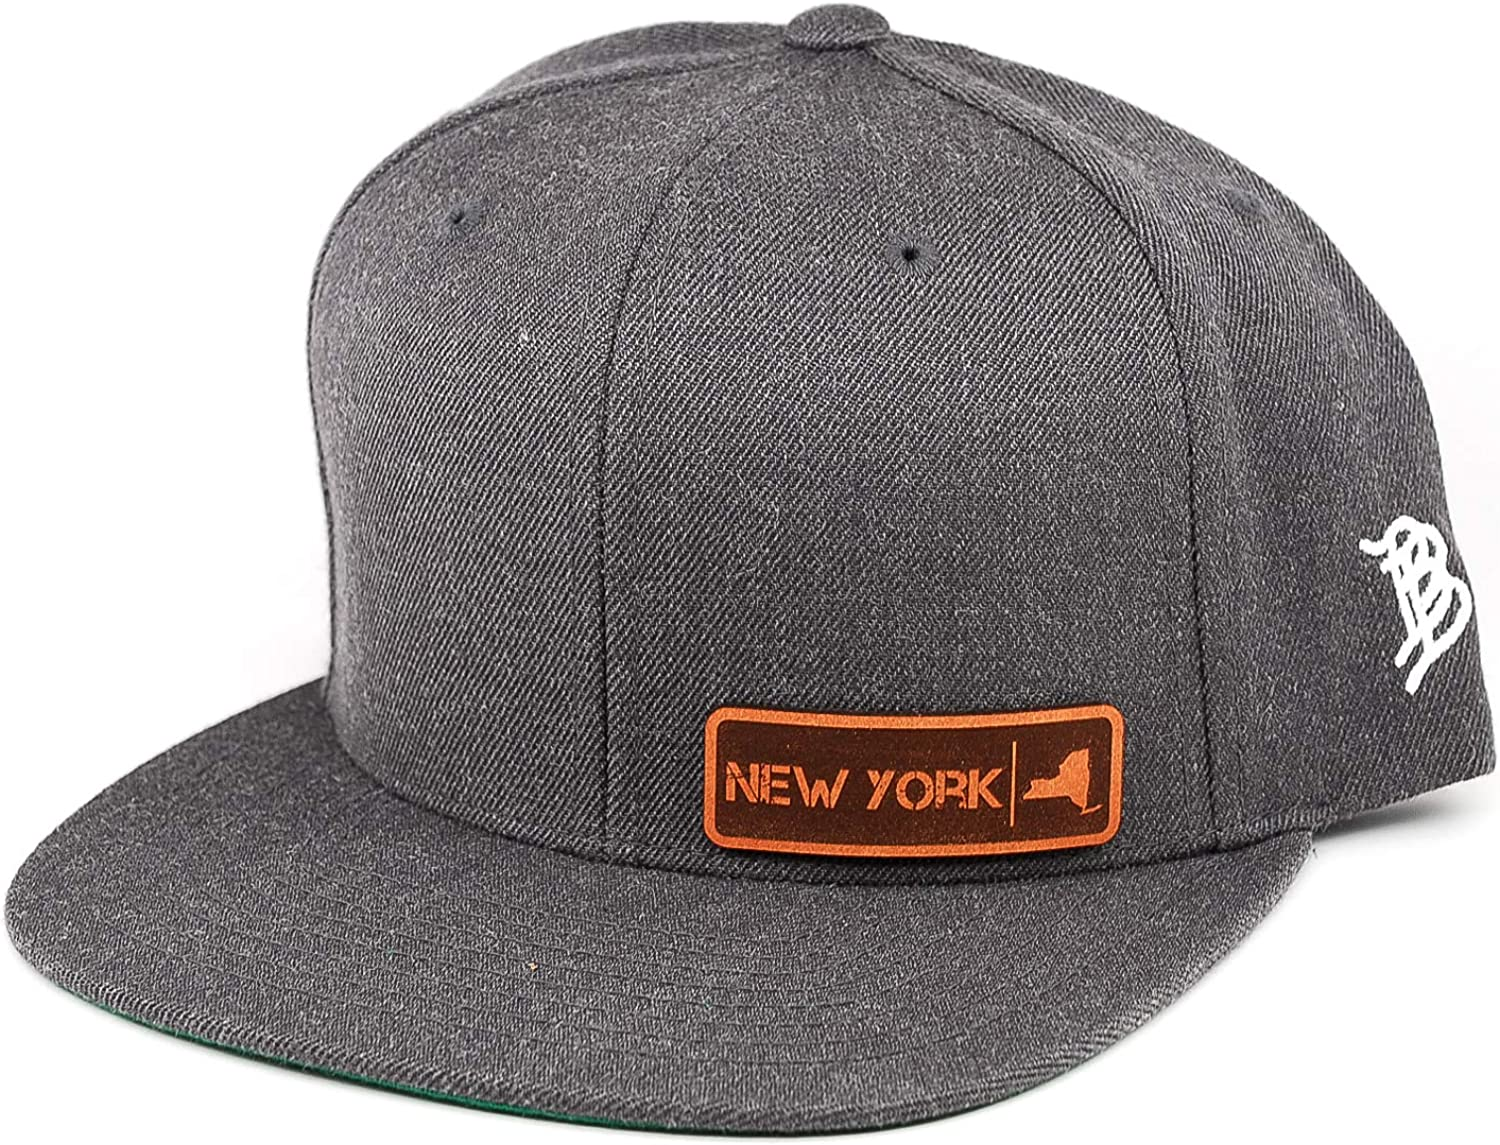 Branded Bills /'New York Native Leather Patch Snapback Hat OSFA//Charcoal